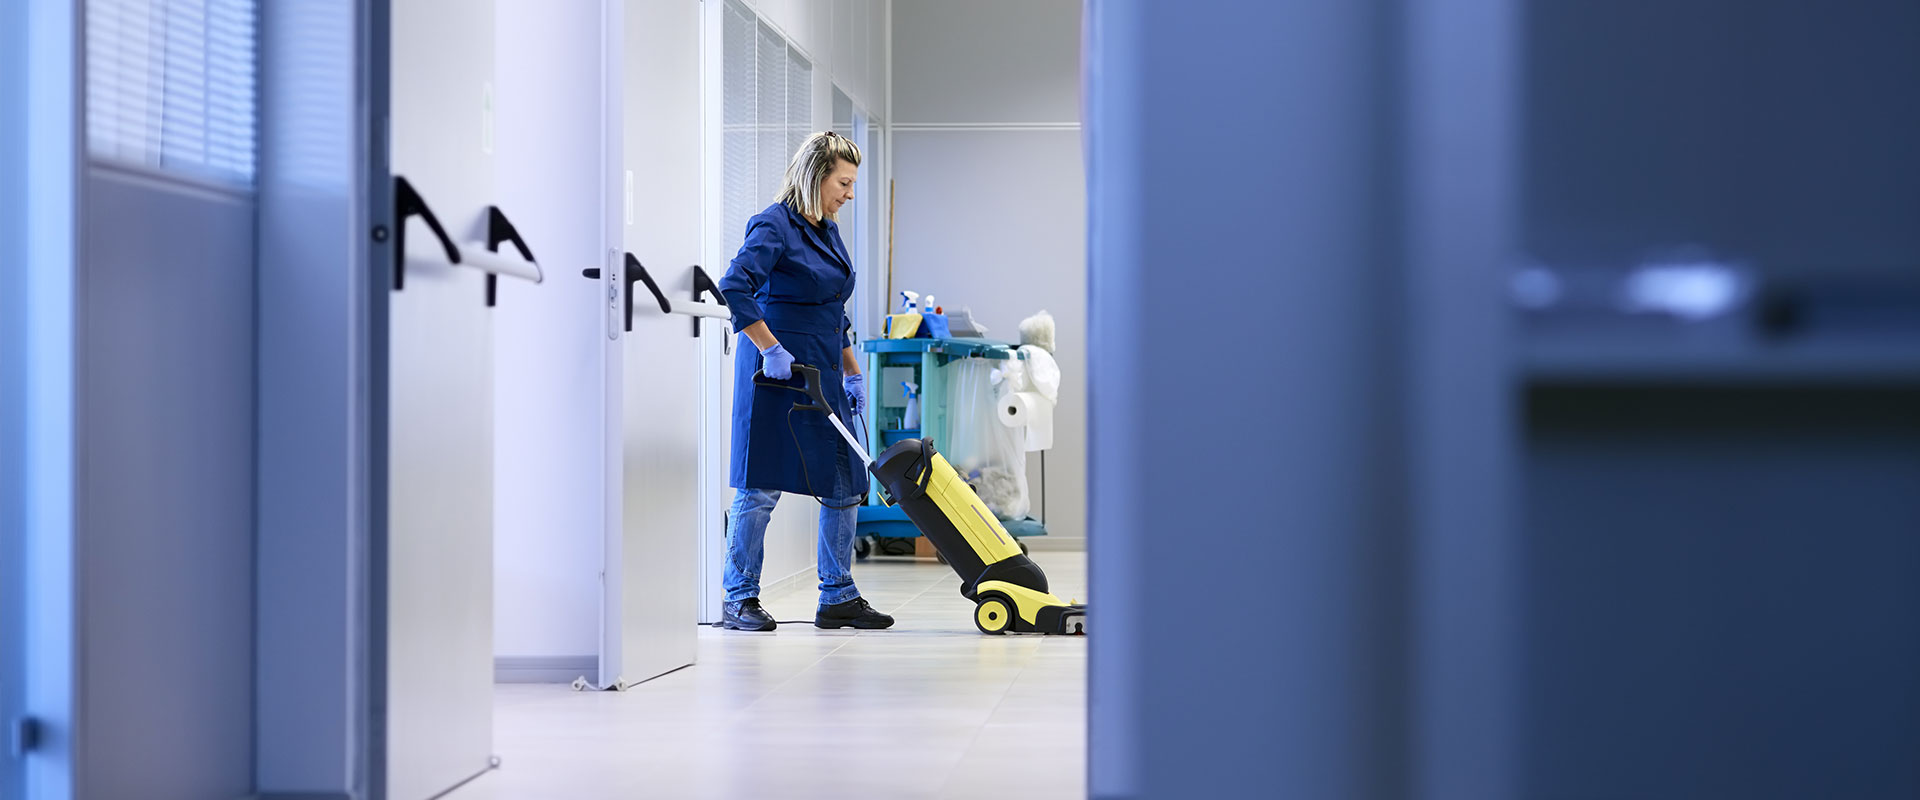 Professional Cleaning Services Newham